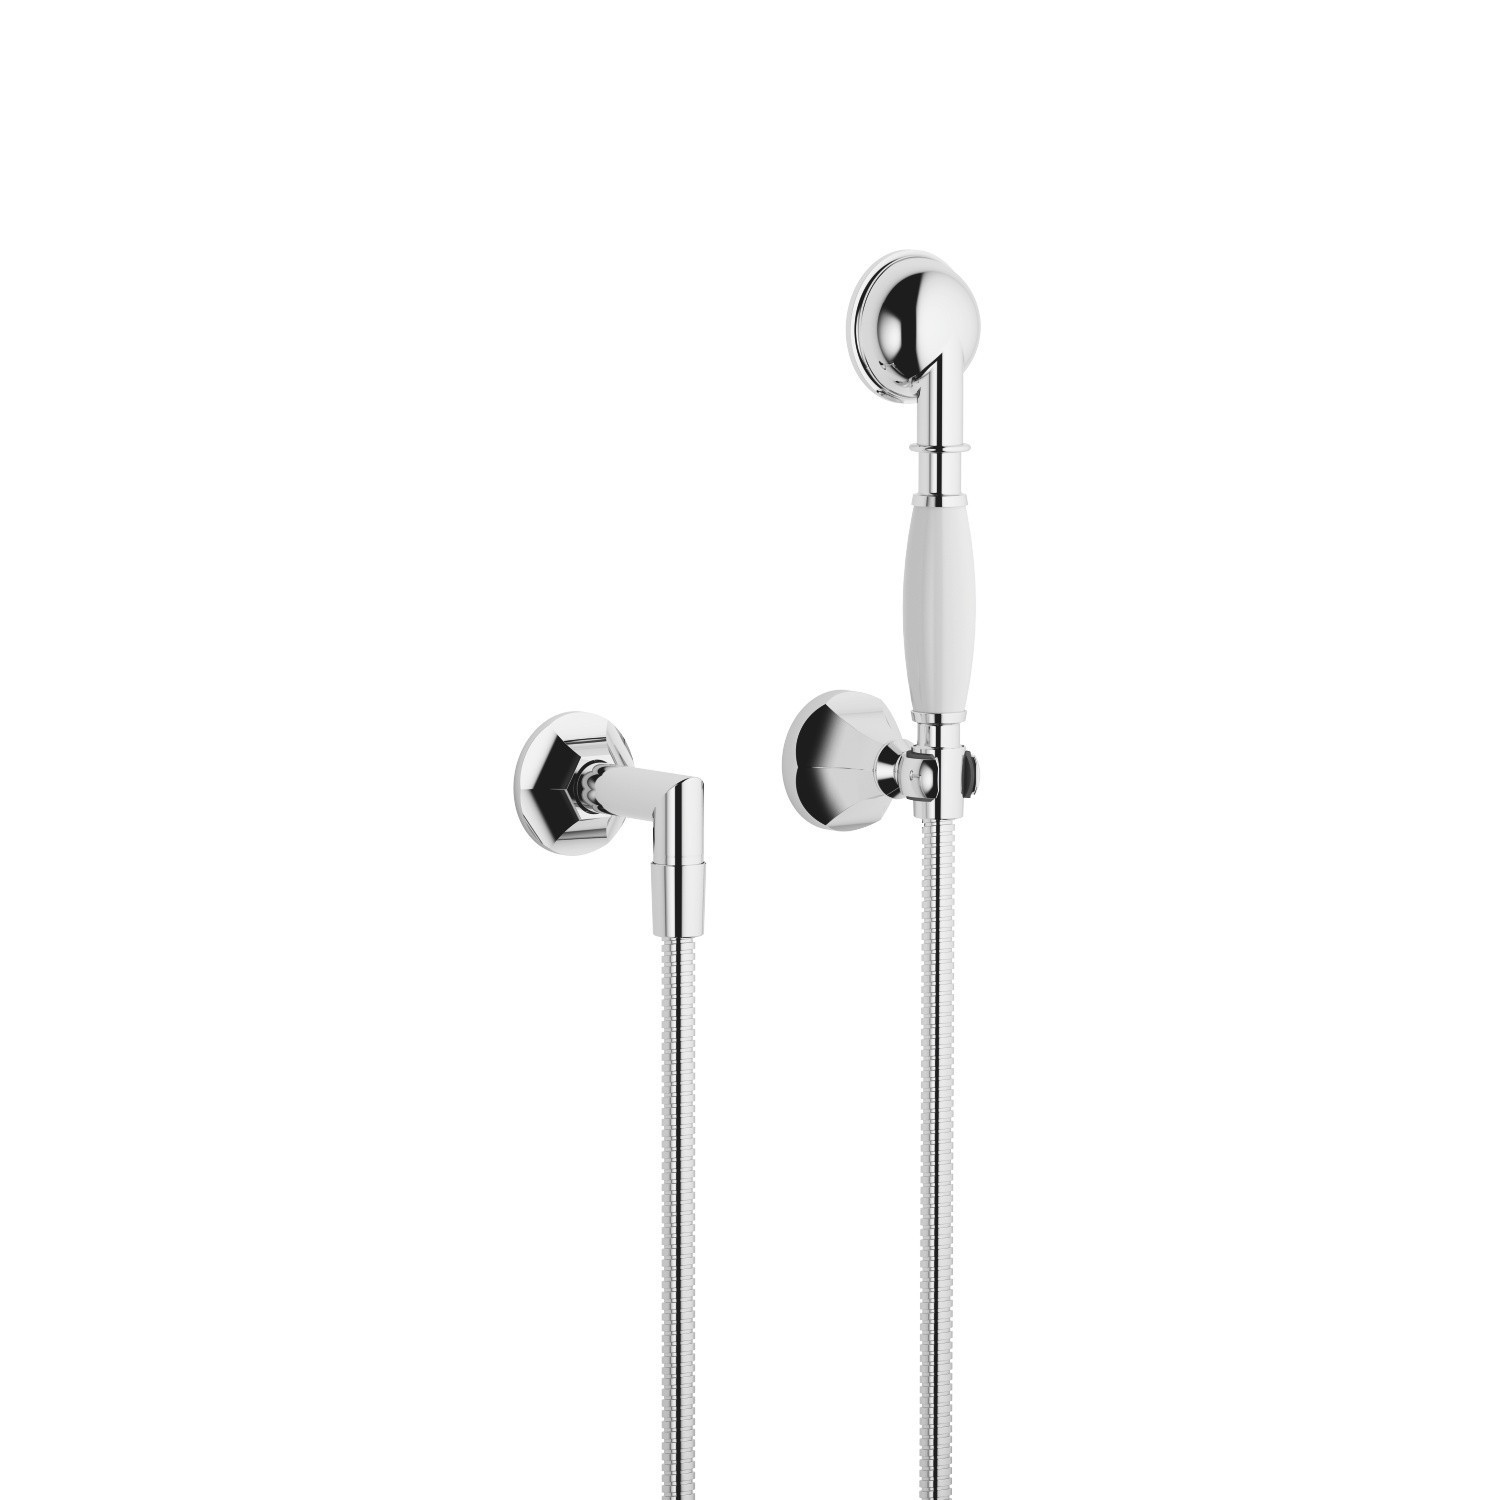 DORNBRACHT 27803371-0010 MADISON WALL MOUNT SINGLE-FUNCTION ROUND FLAIR HAND SHOWER SET WITH INDIVIDUAL FLANGES